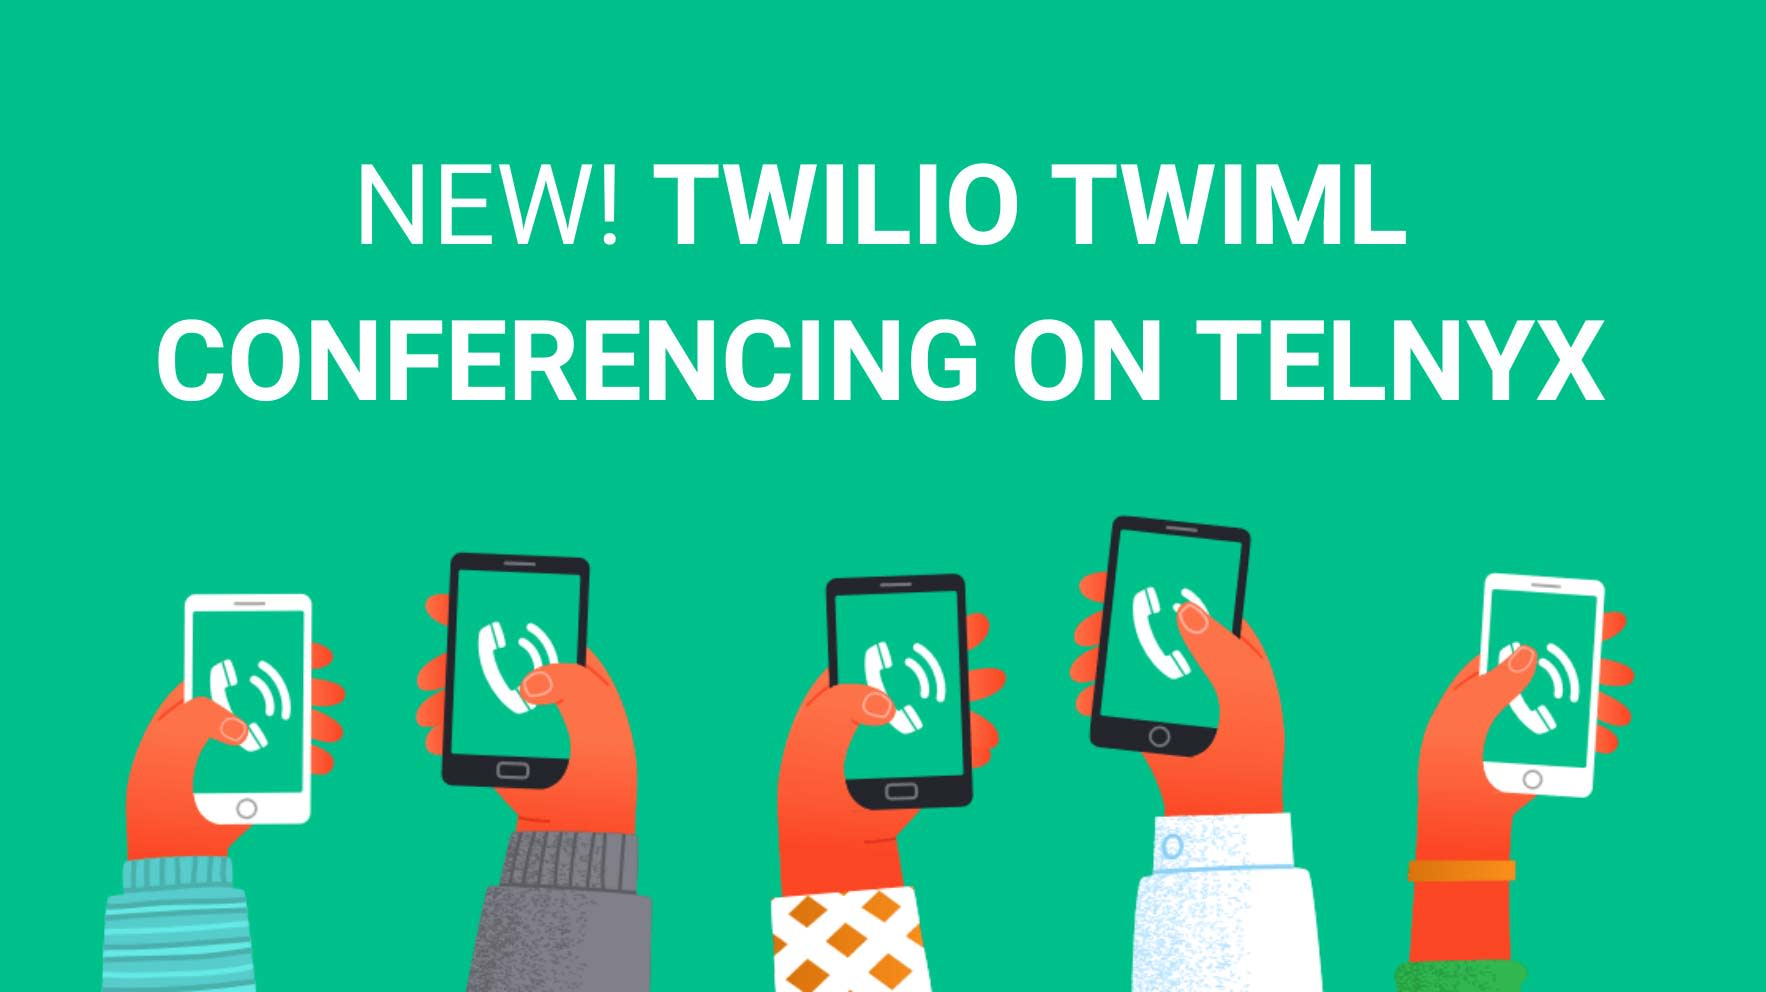 Twilio TwiML Conferencing on the Telnyx Programmable Voice API